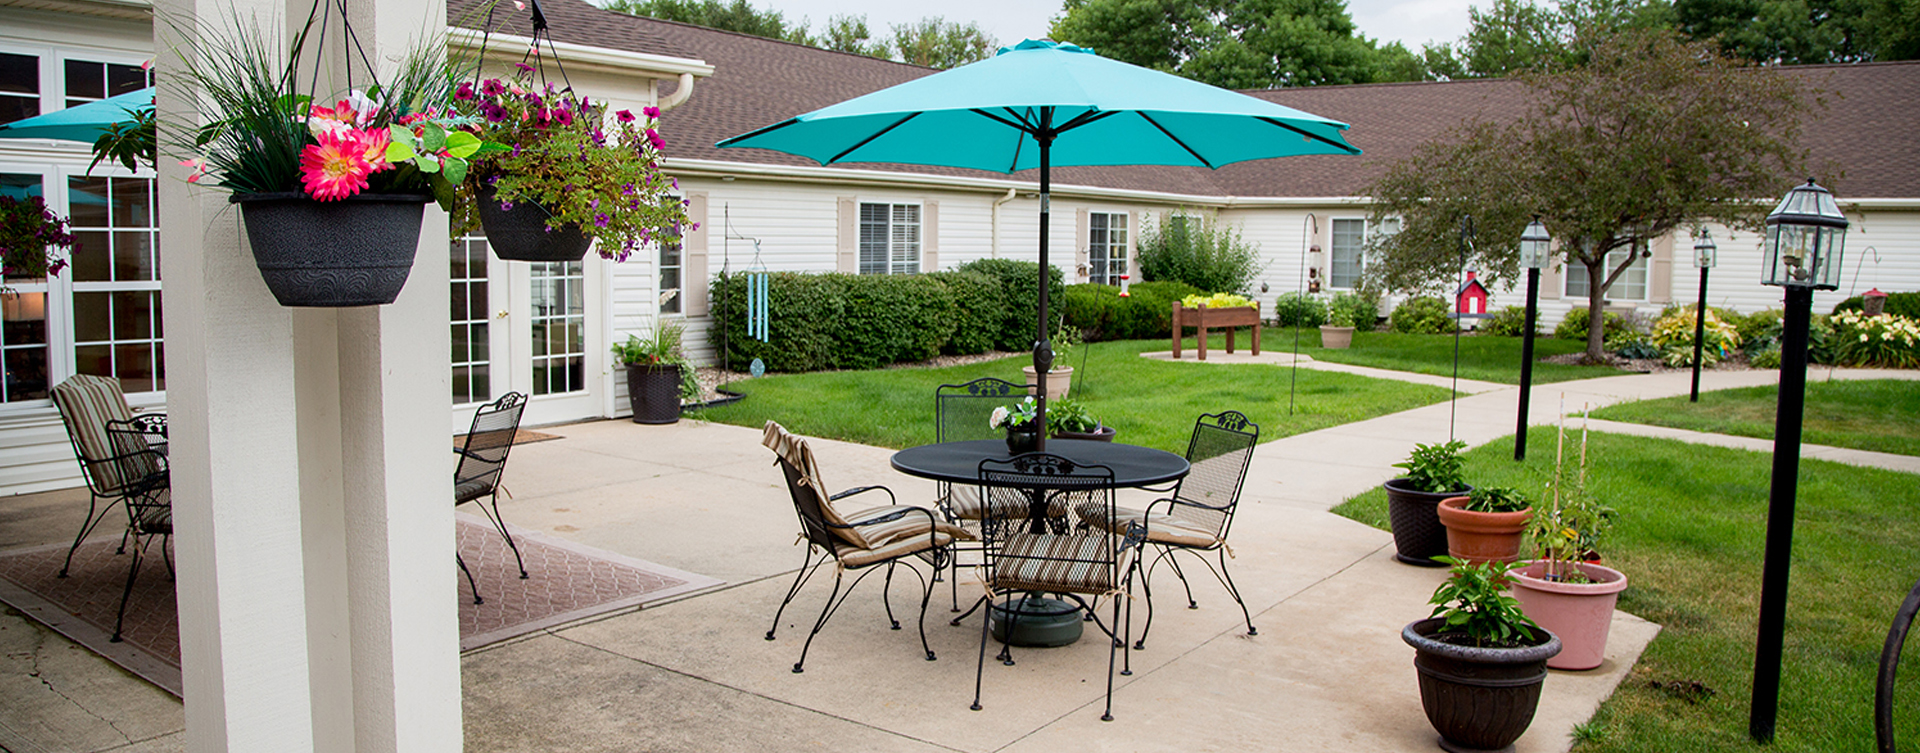 Enjoy bird watching, gardening and barbecuing in our courtyard at Bickford of Fort Dodge